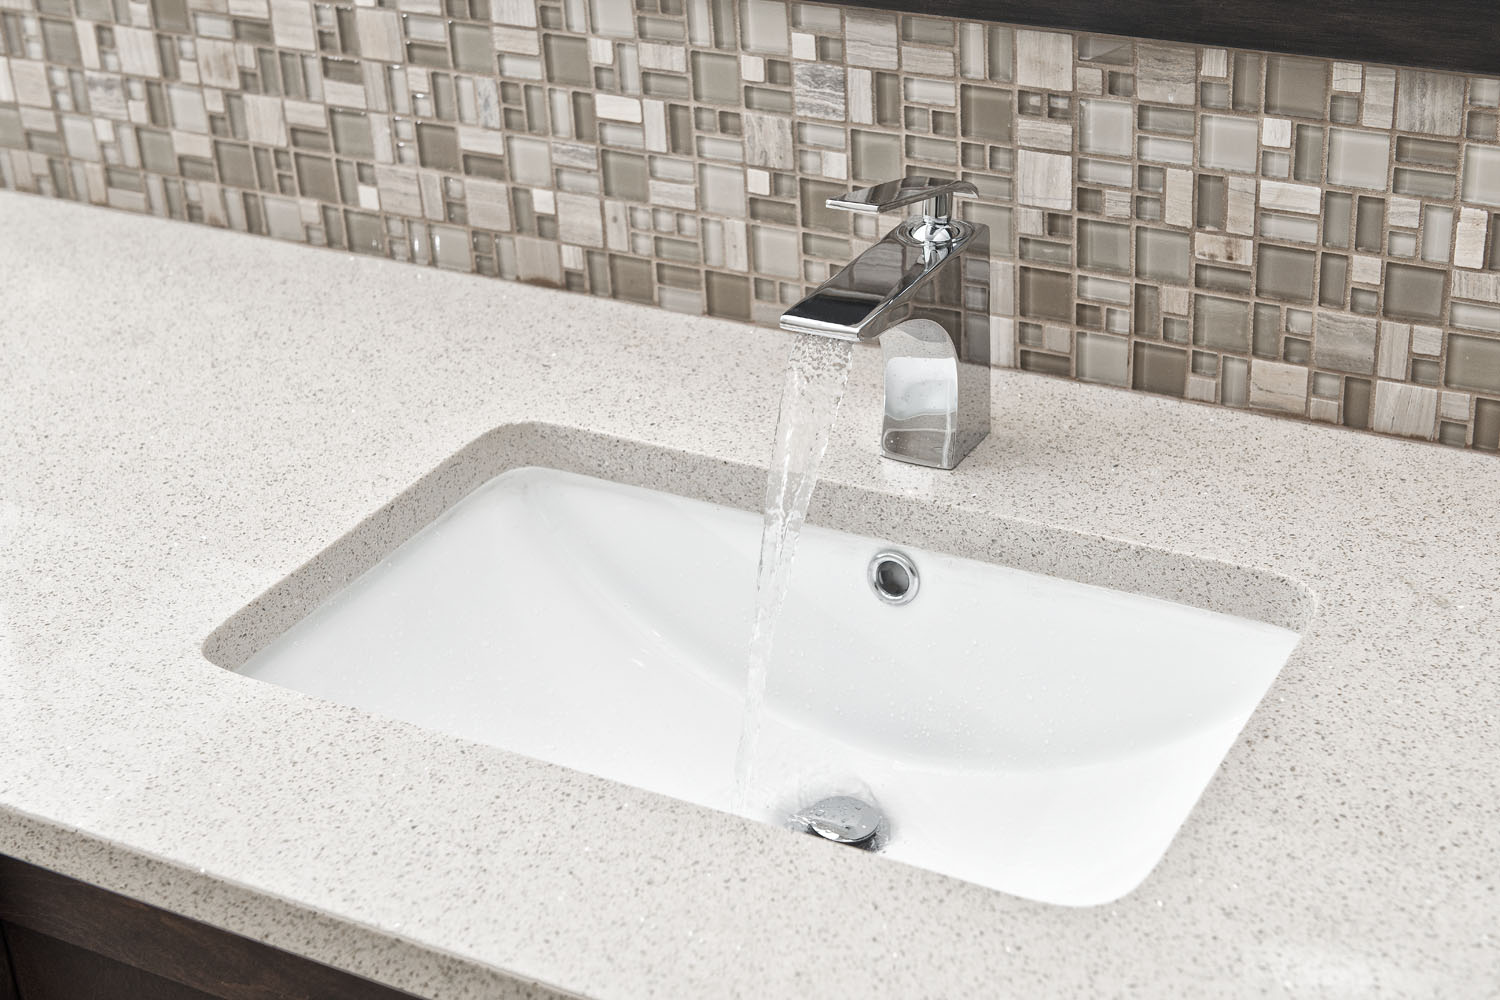 Bathroom Renovation Home Kitchen And Bathroom Renovation And - Bathroom remodel vancouver bc